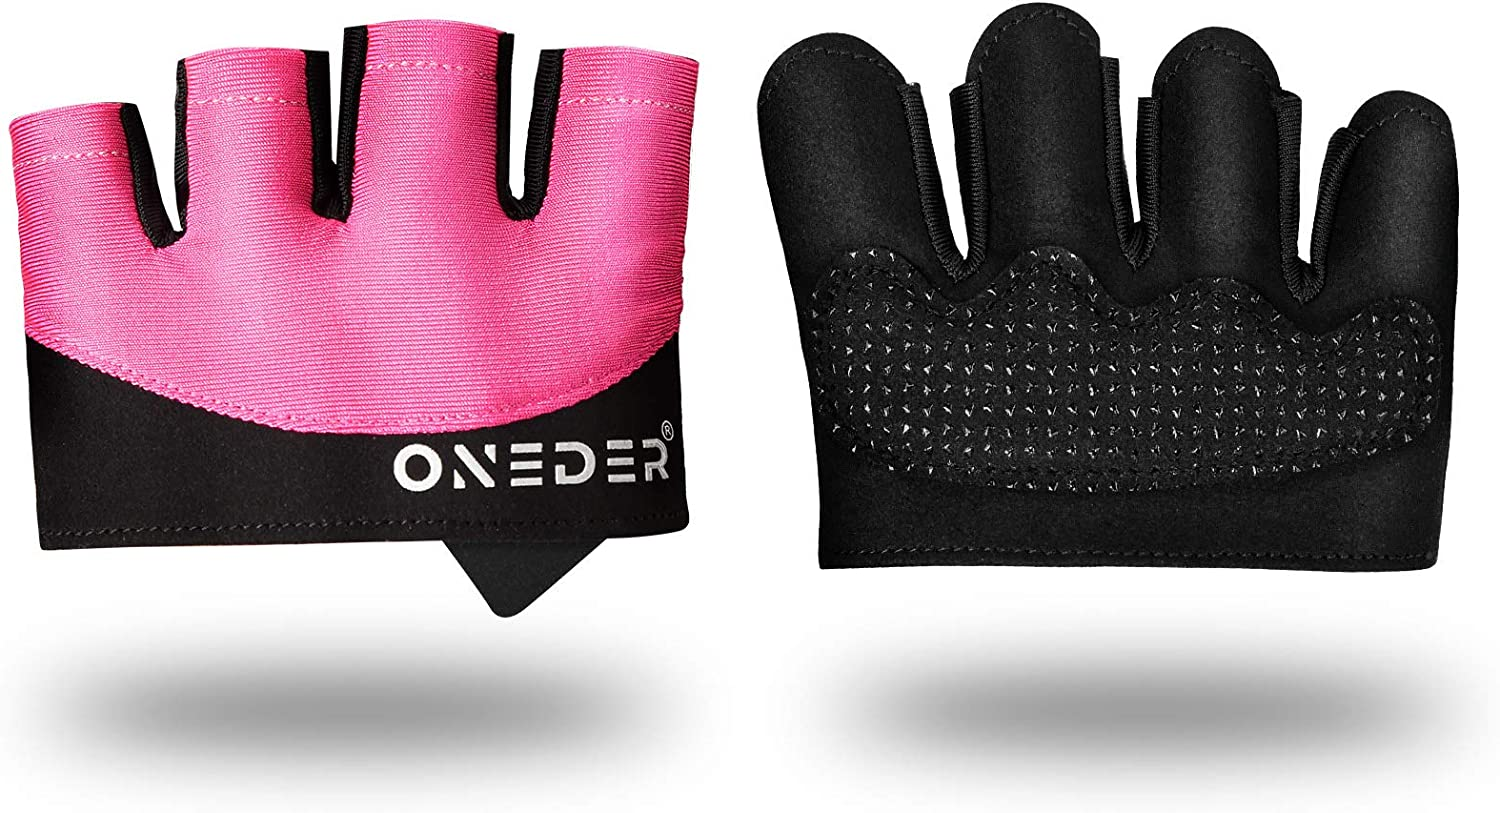 Jacksonville Mall 2021 Grip Workout Gloves lowest price for Women 3mm Gym Men Padding